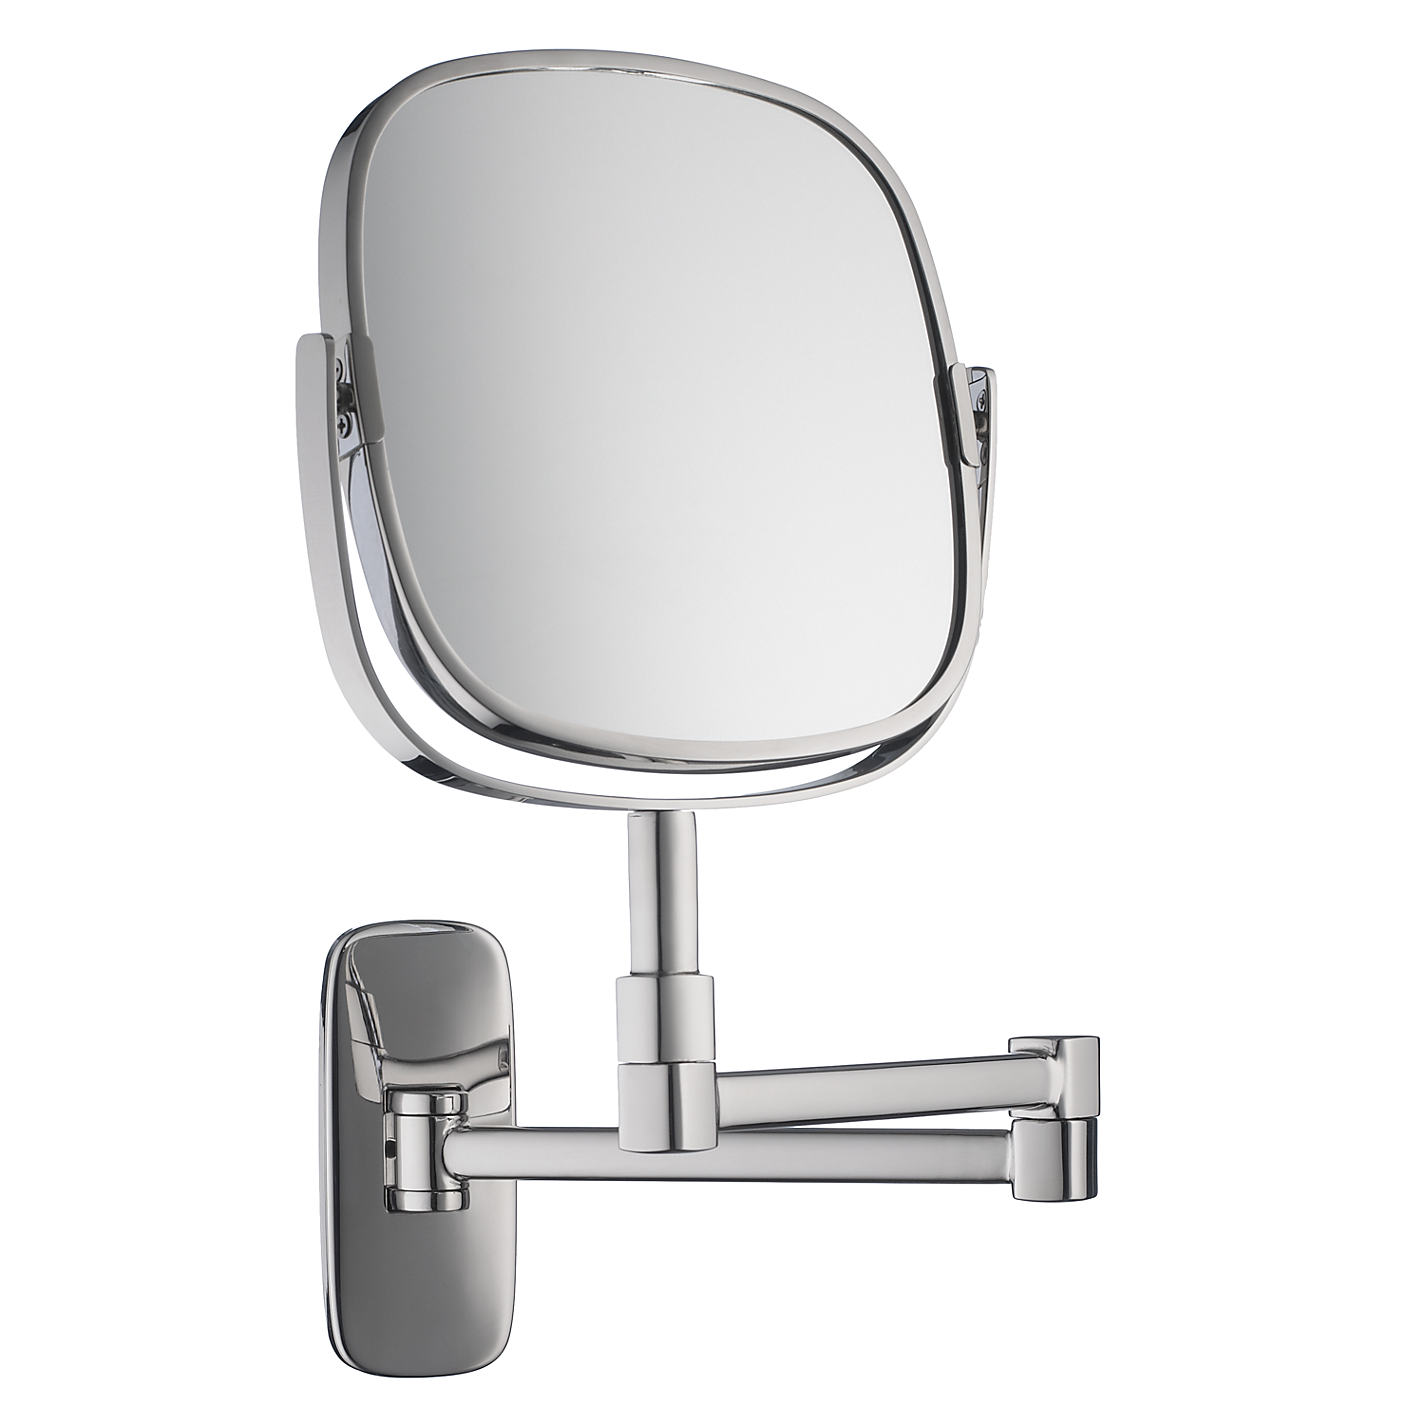 Best Place To Buy Bathroom Mirrors: Buy Bathroom Zoom Mirrors Online In Canada